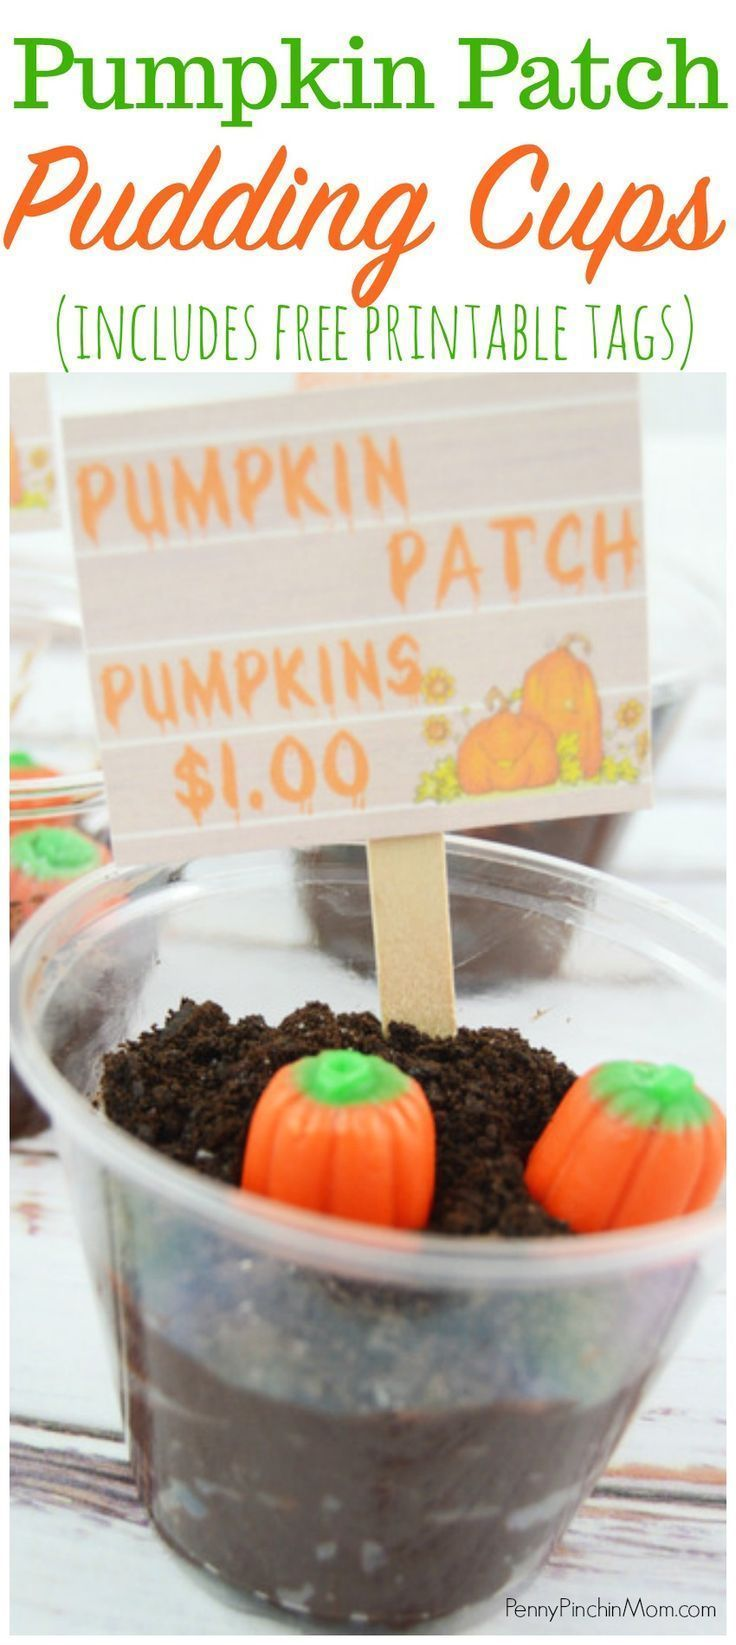 Pumpkin Patch Pudding Cups | An easy and adorable Fall dessert!